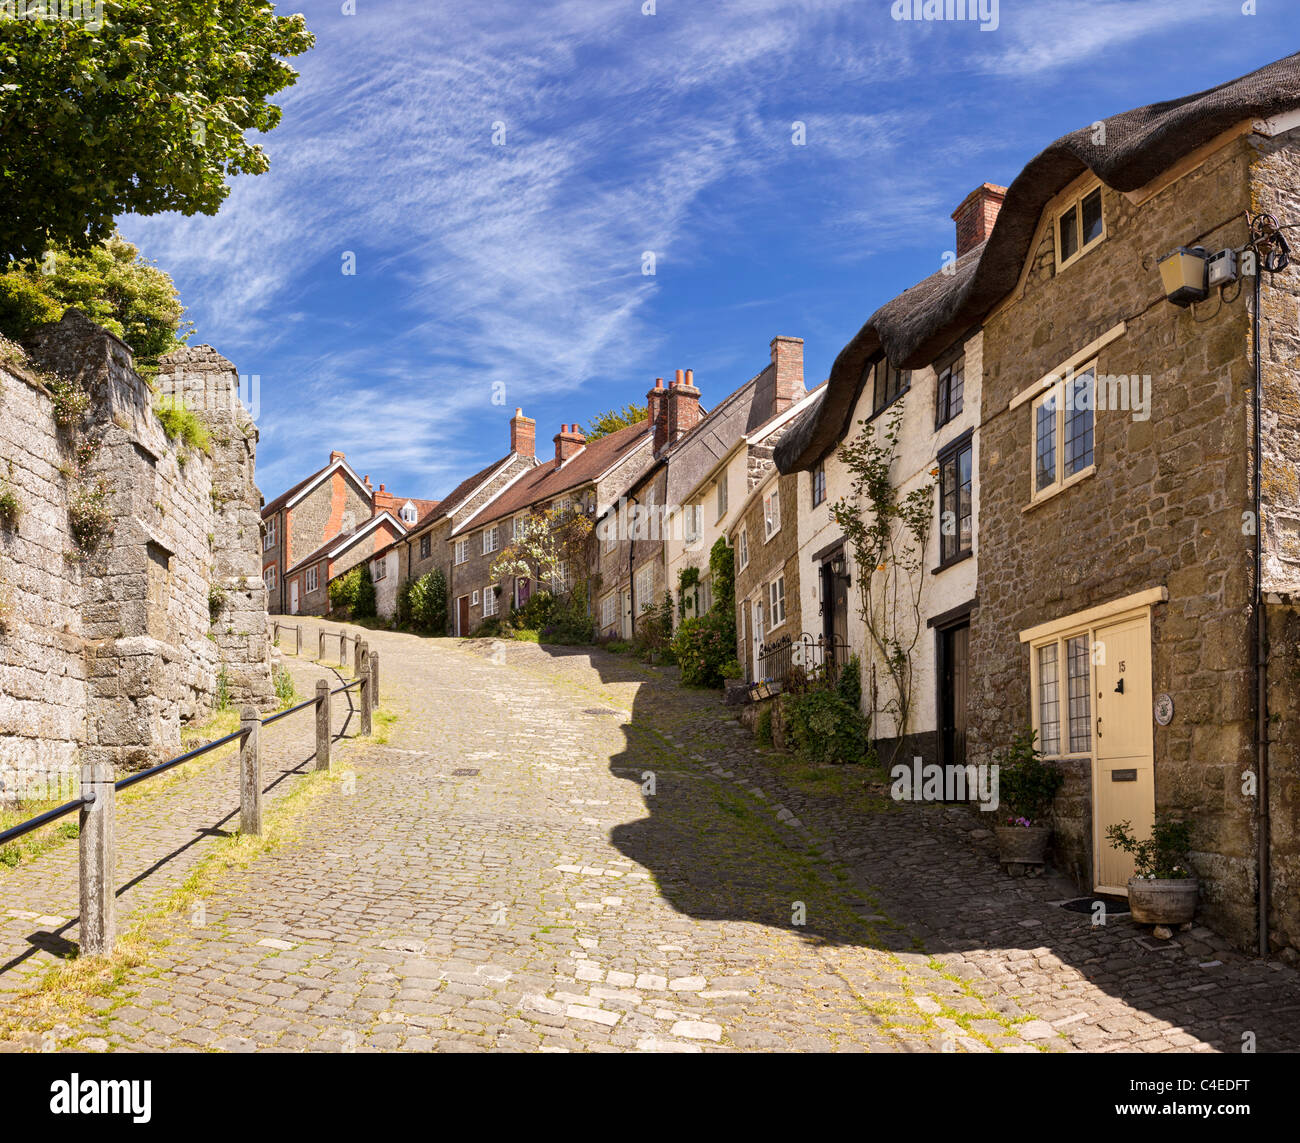 Typical traditional English cobbled street on Gold Hill, Shaftesbury, Dorset, England, UK viewed from bottom of - Stock Image